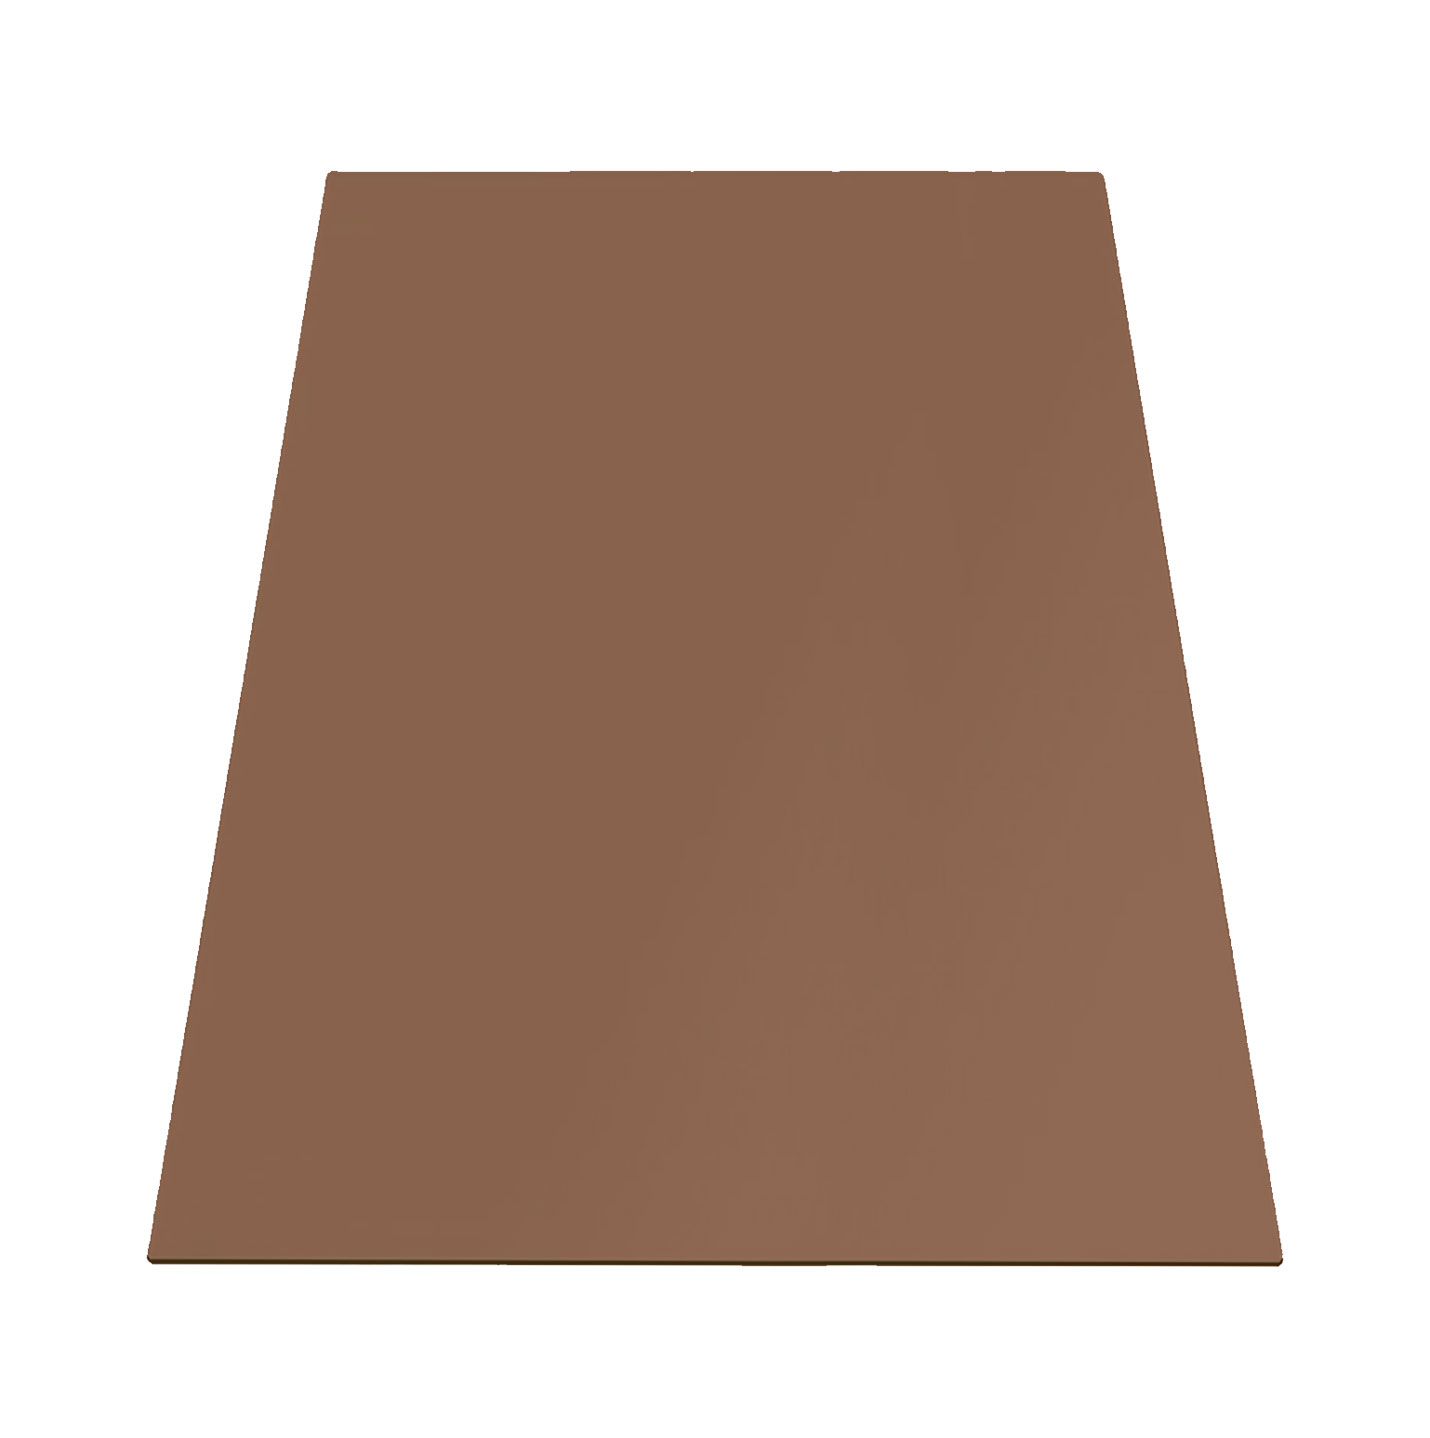 Buy 8 mm Rectangle Table Top Tempered Bronze Tinted Glass - Flat polished edges